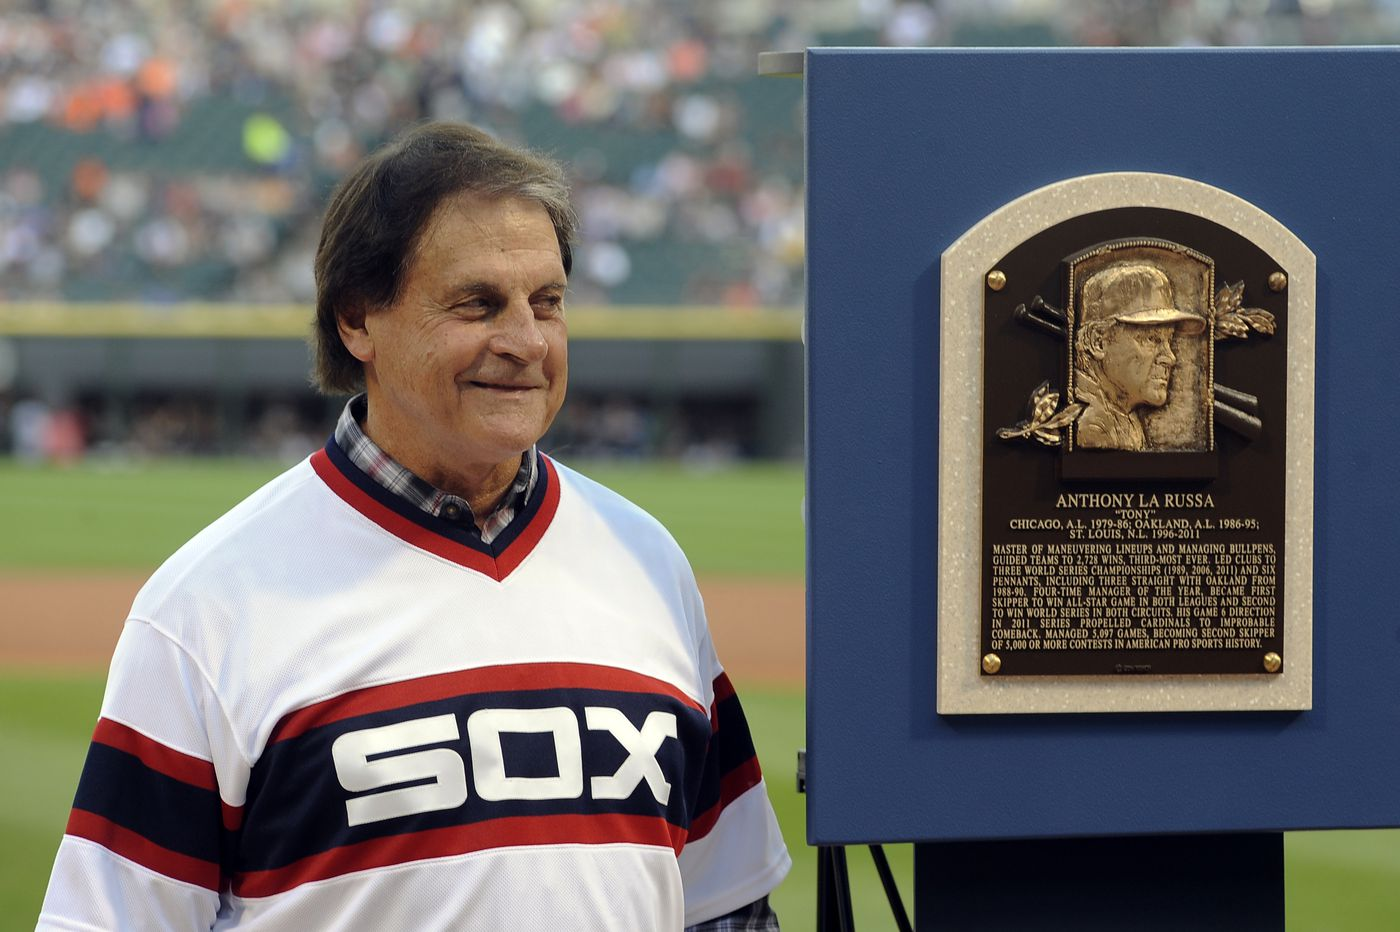 White Sox hire Tony La Russa as next manager, Jack Nicklaus and Jay Cutler endorse Donald Trump, and more sports news